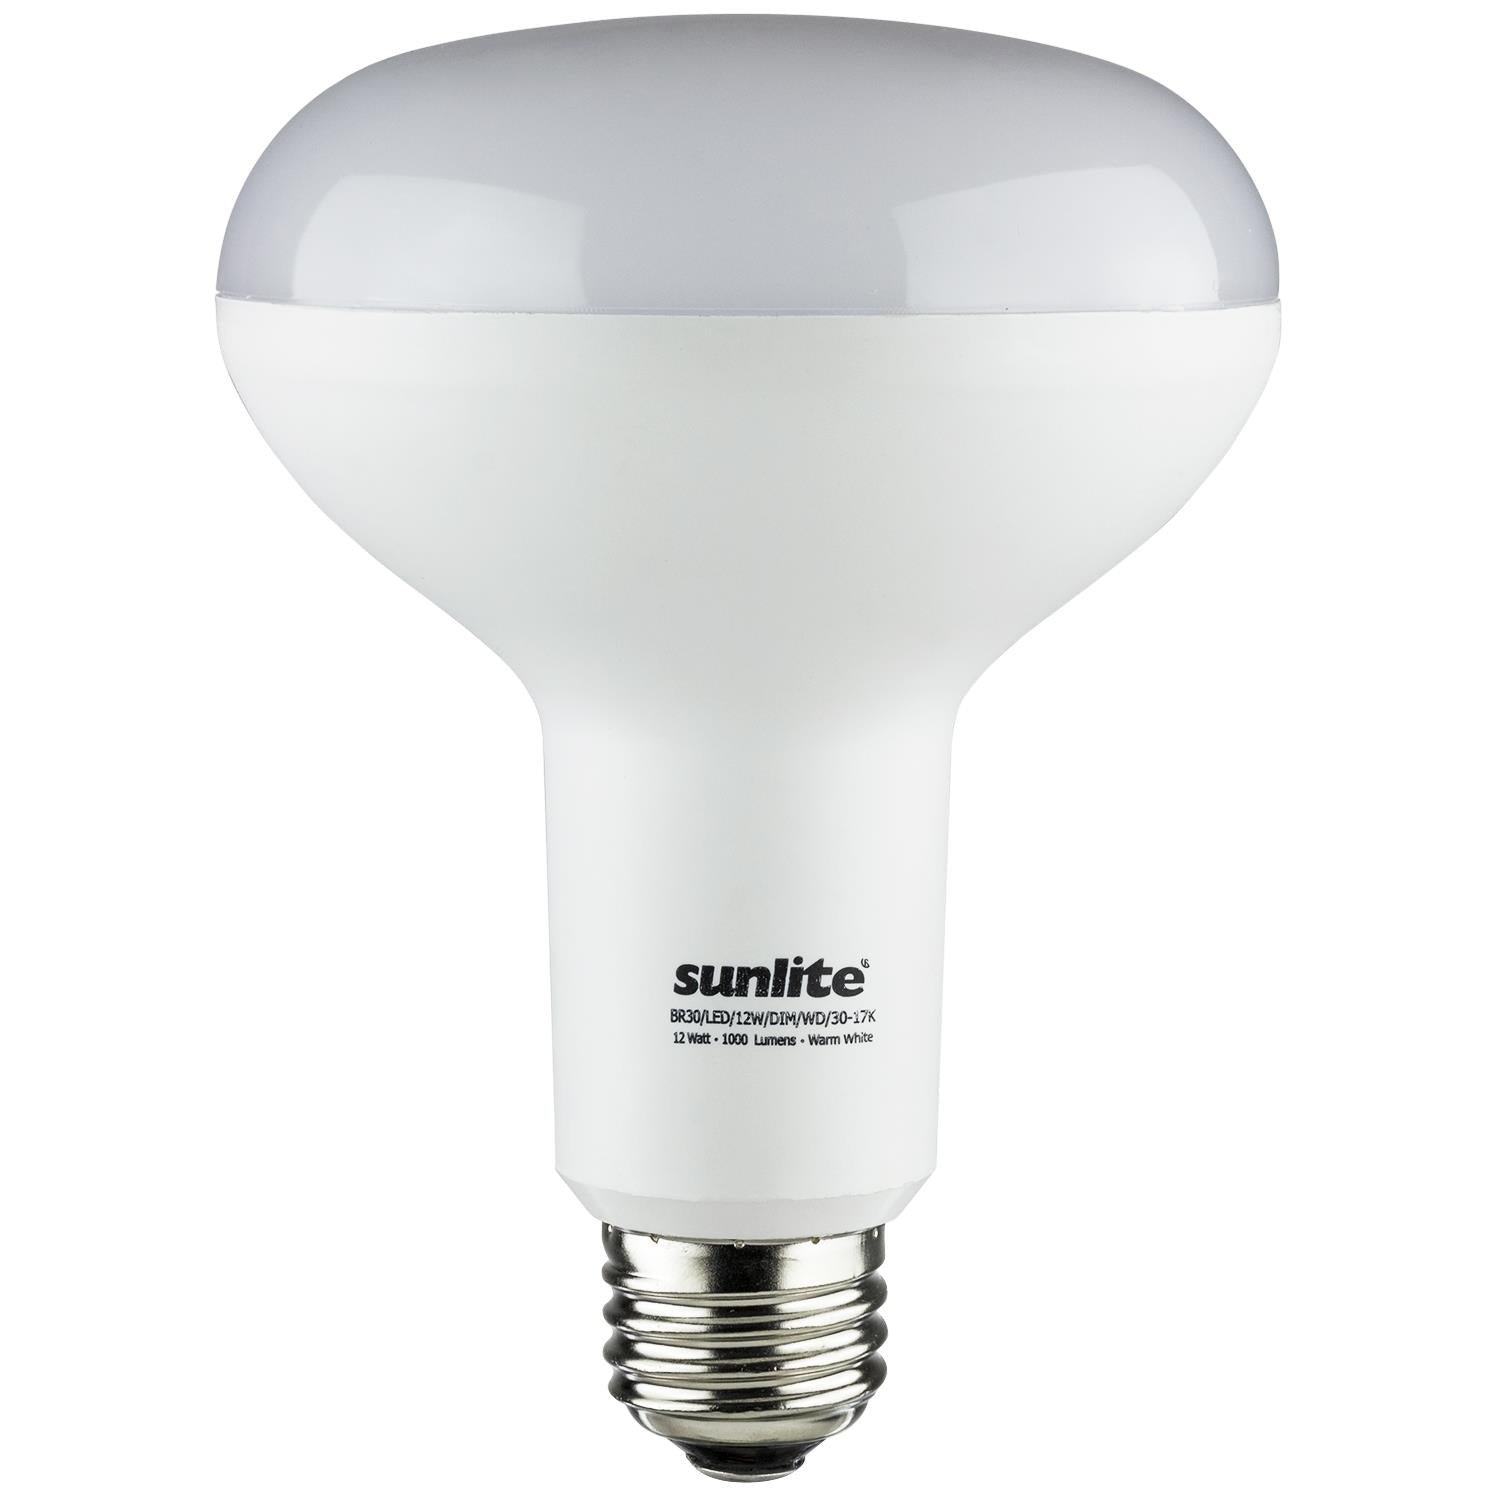 SUNLITE 80510-SU LED BR30 Hospitality Series 12w Light Bulb 3000K Warm White